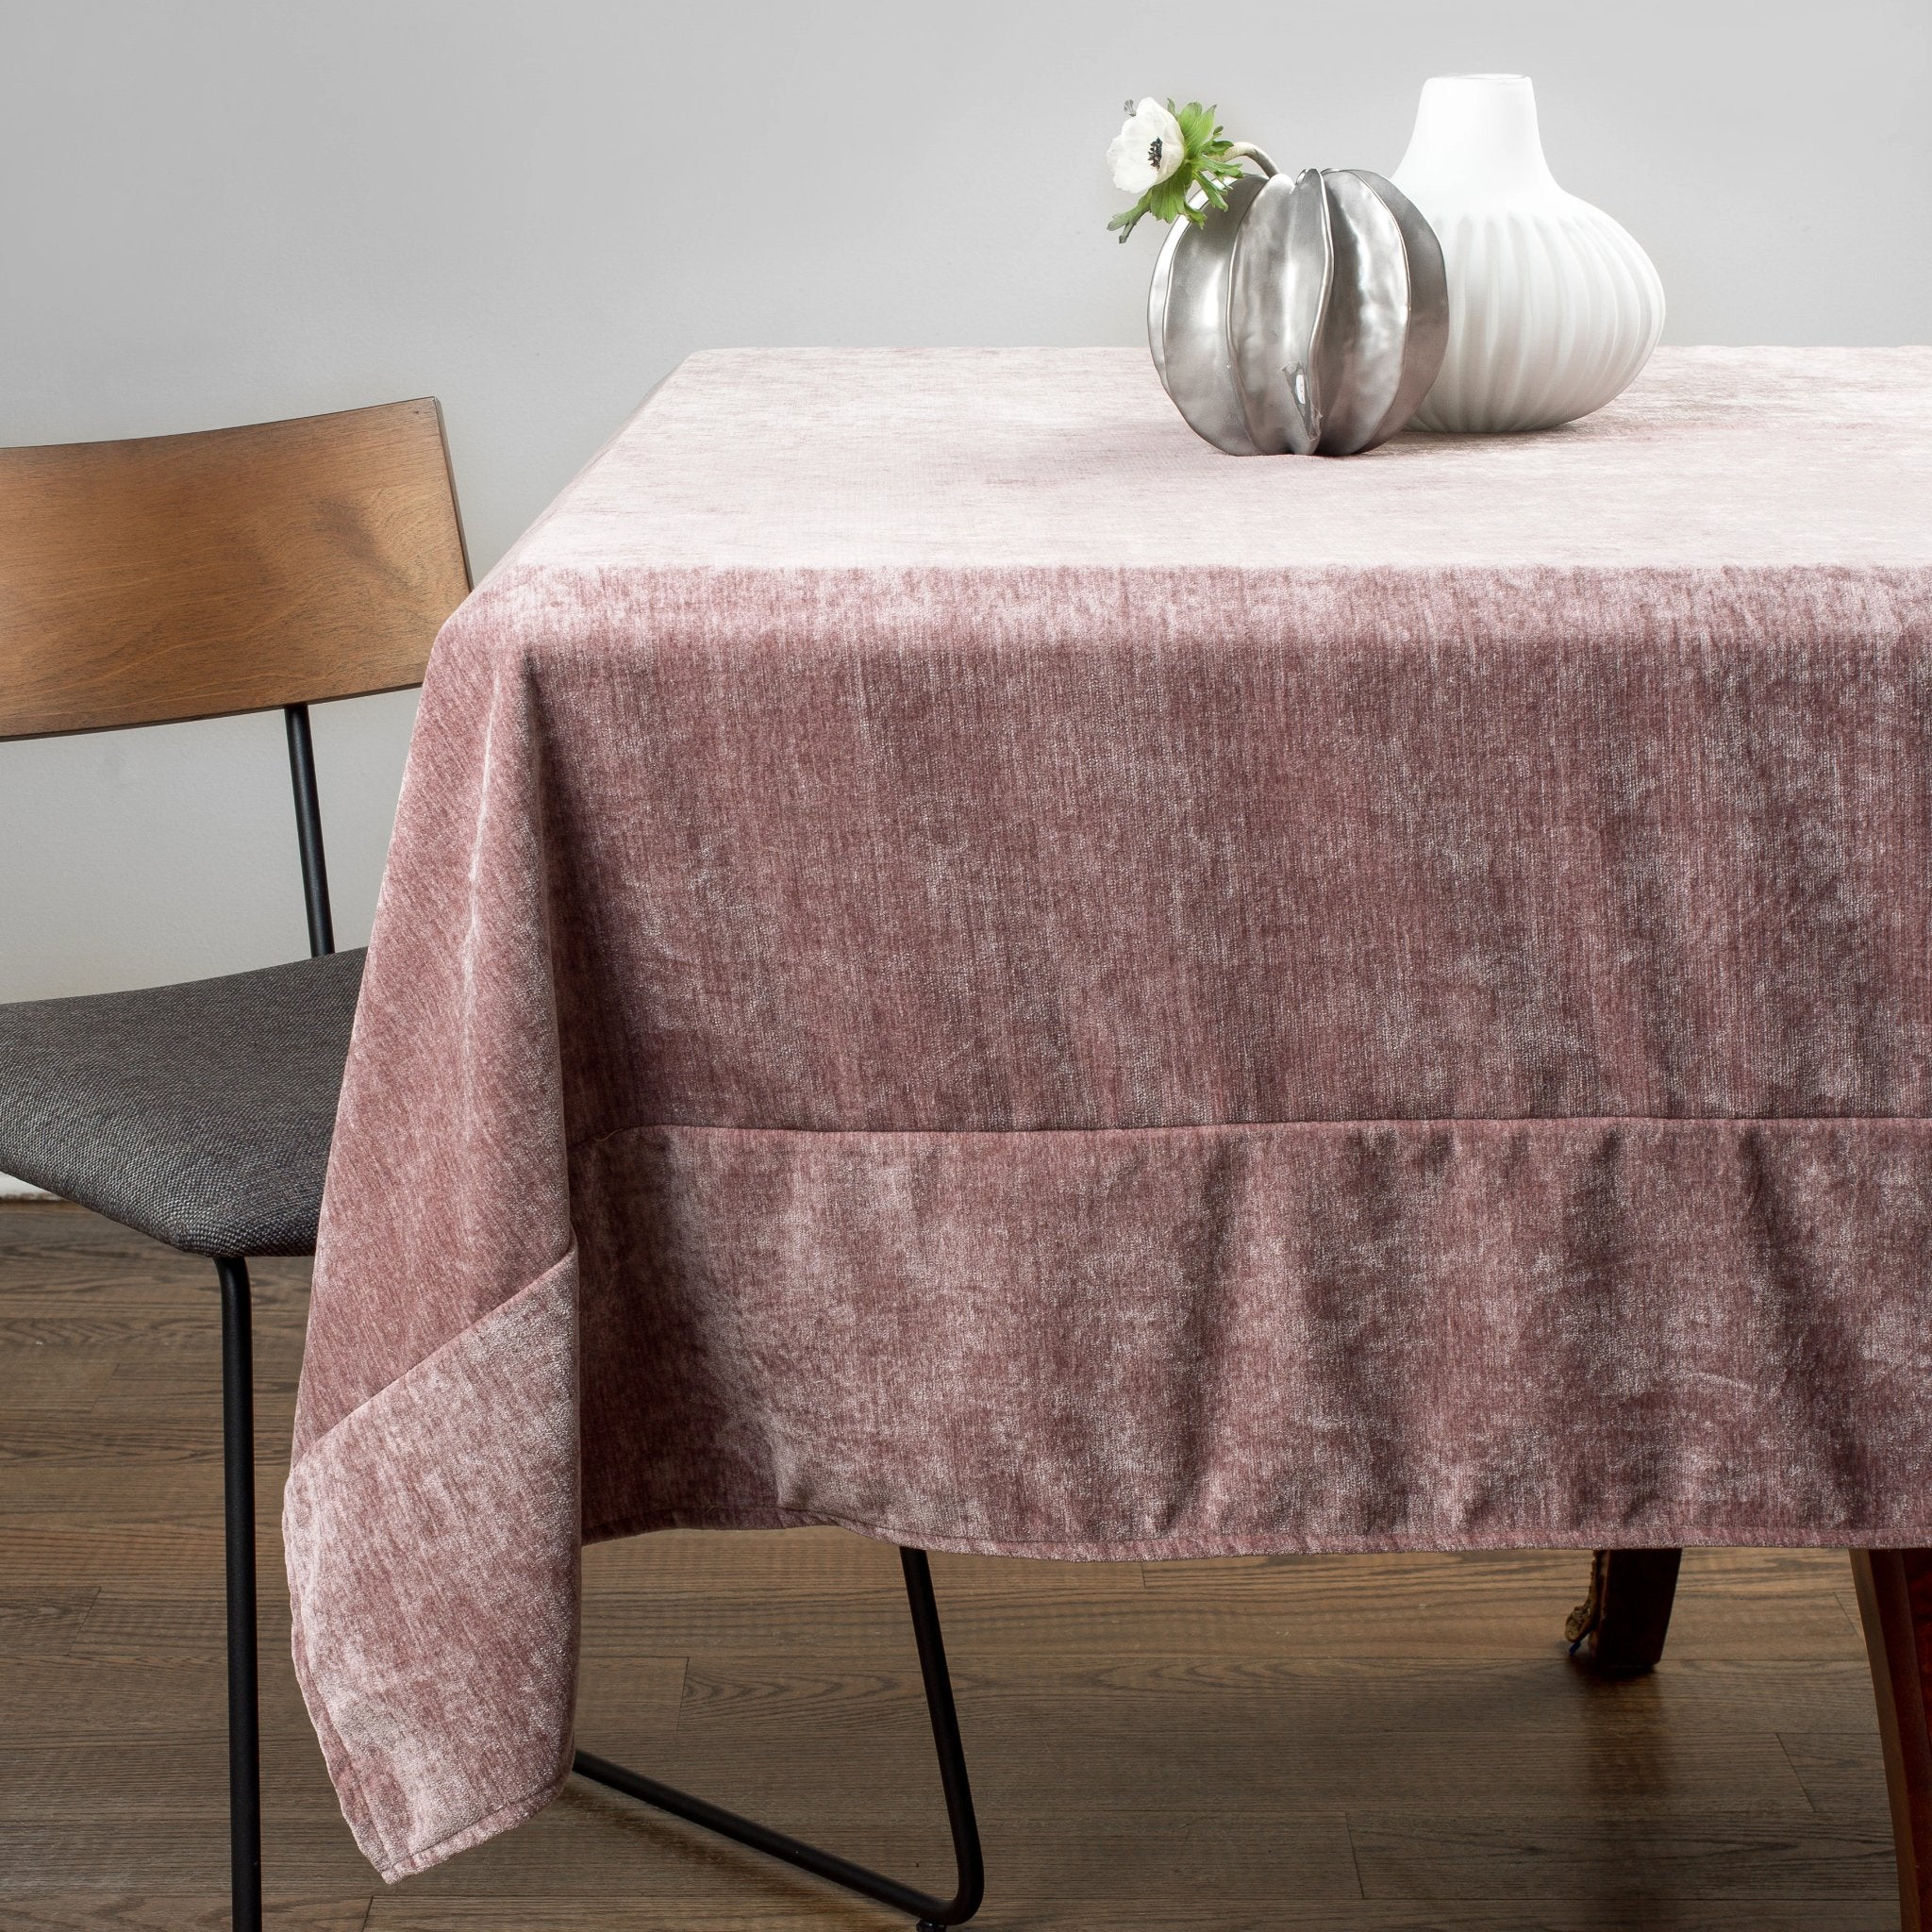 Velvet Tablecloth